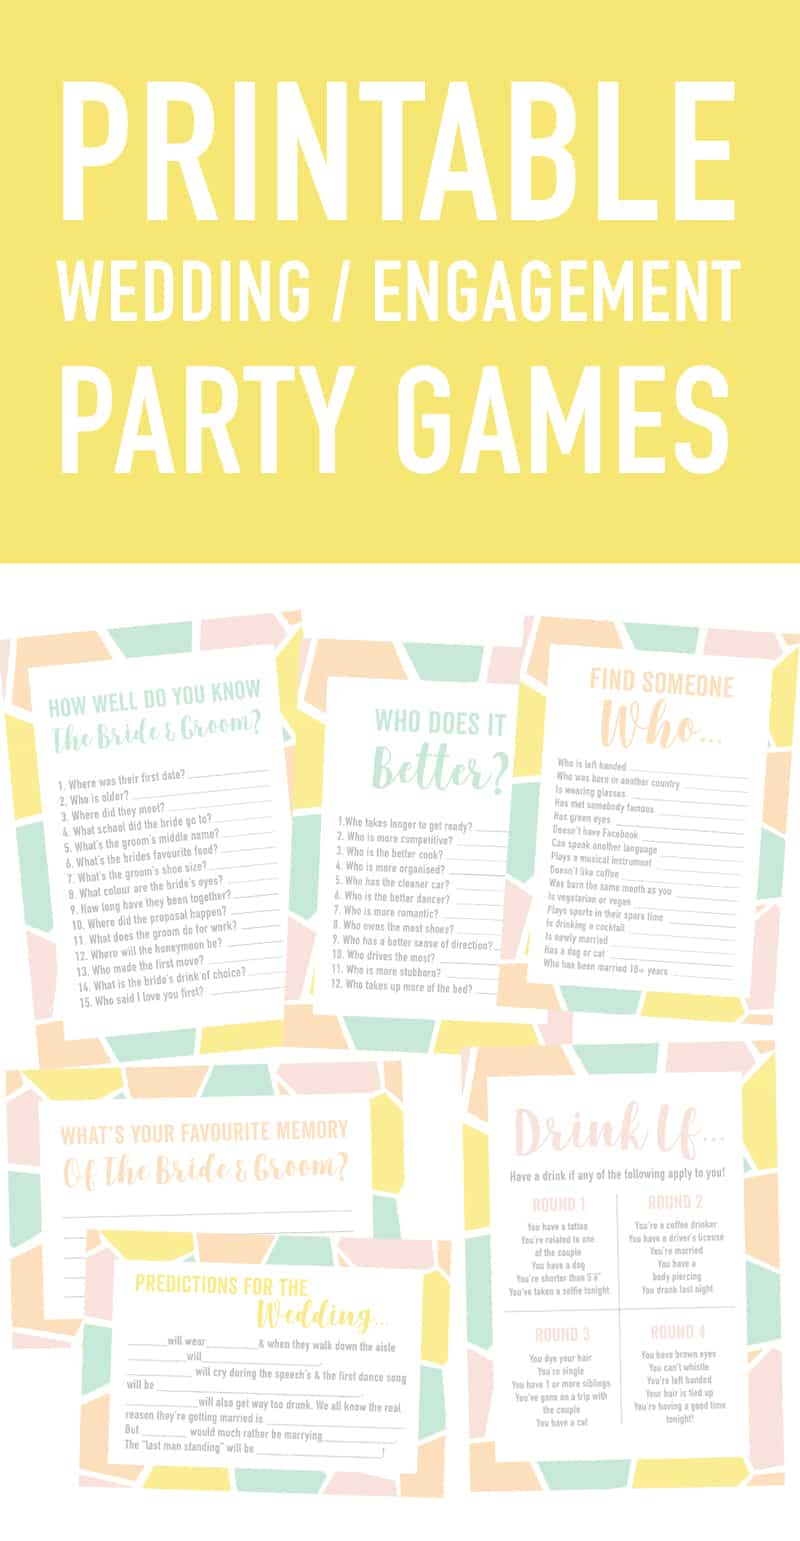 photo regarding Printable Party Games called No cost PRINTABLE ENGAGEMENT Get together OR Wedding ceremony ICE BREAKER Activity